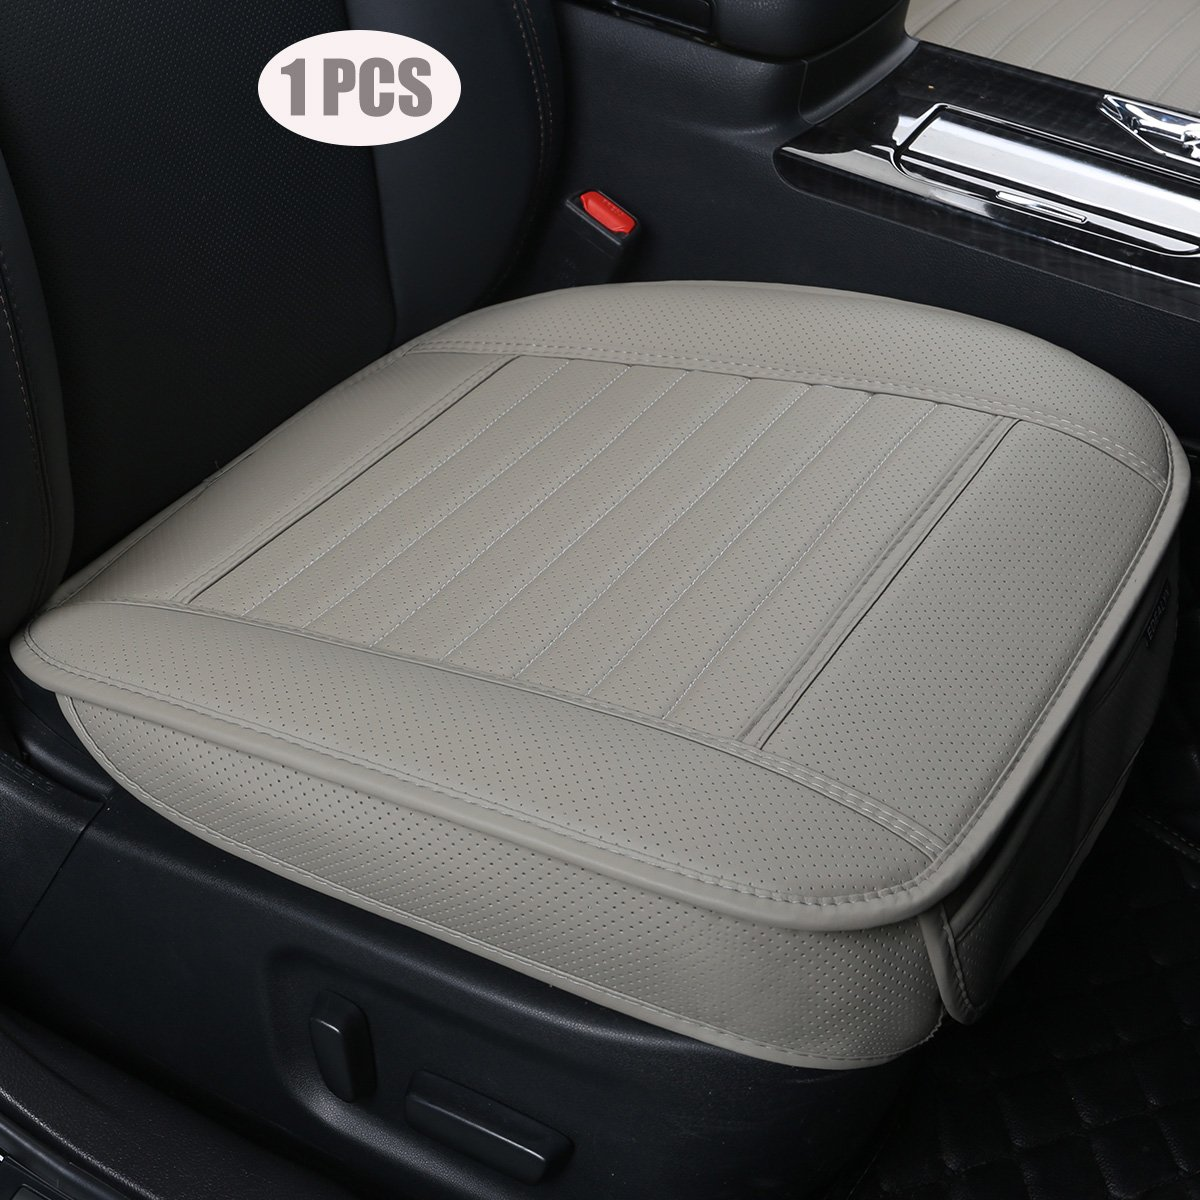 1PCS Gray-3D Backless Seat Cover,Deep 20 inch /× Width 20 inch /× Thick 0.4 inch Car interior Seat Cover PU Leather Without backrest Front Seat Protection Car Seat Cover EDEALYN